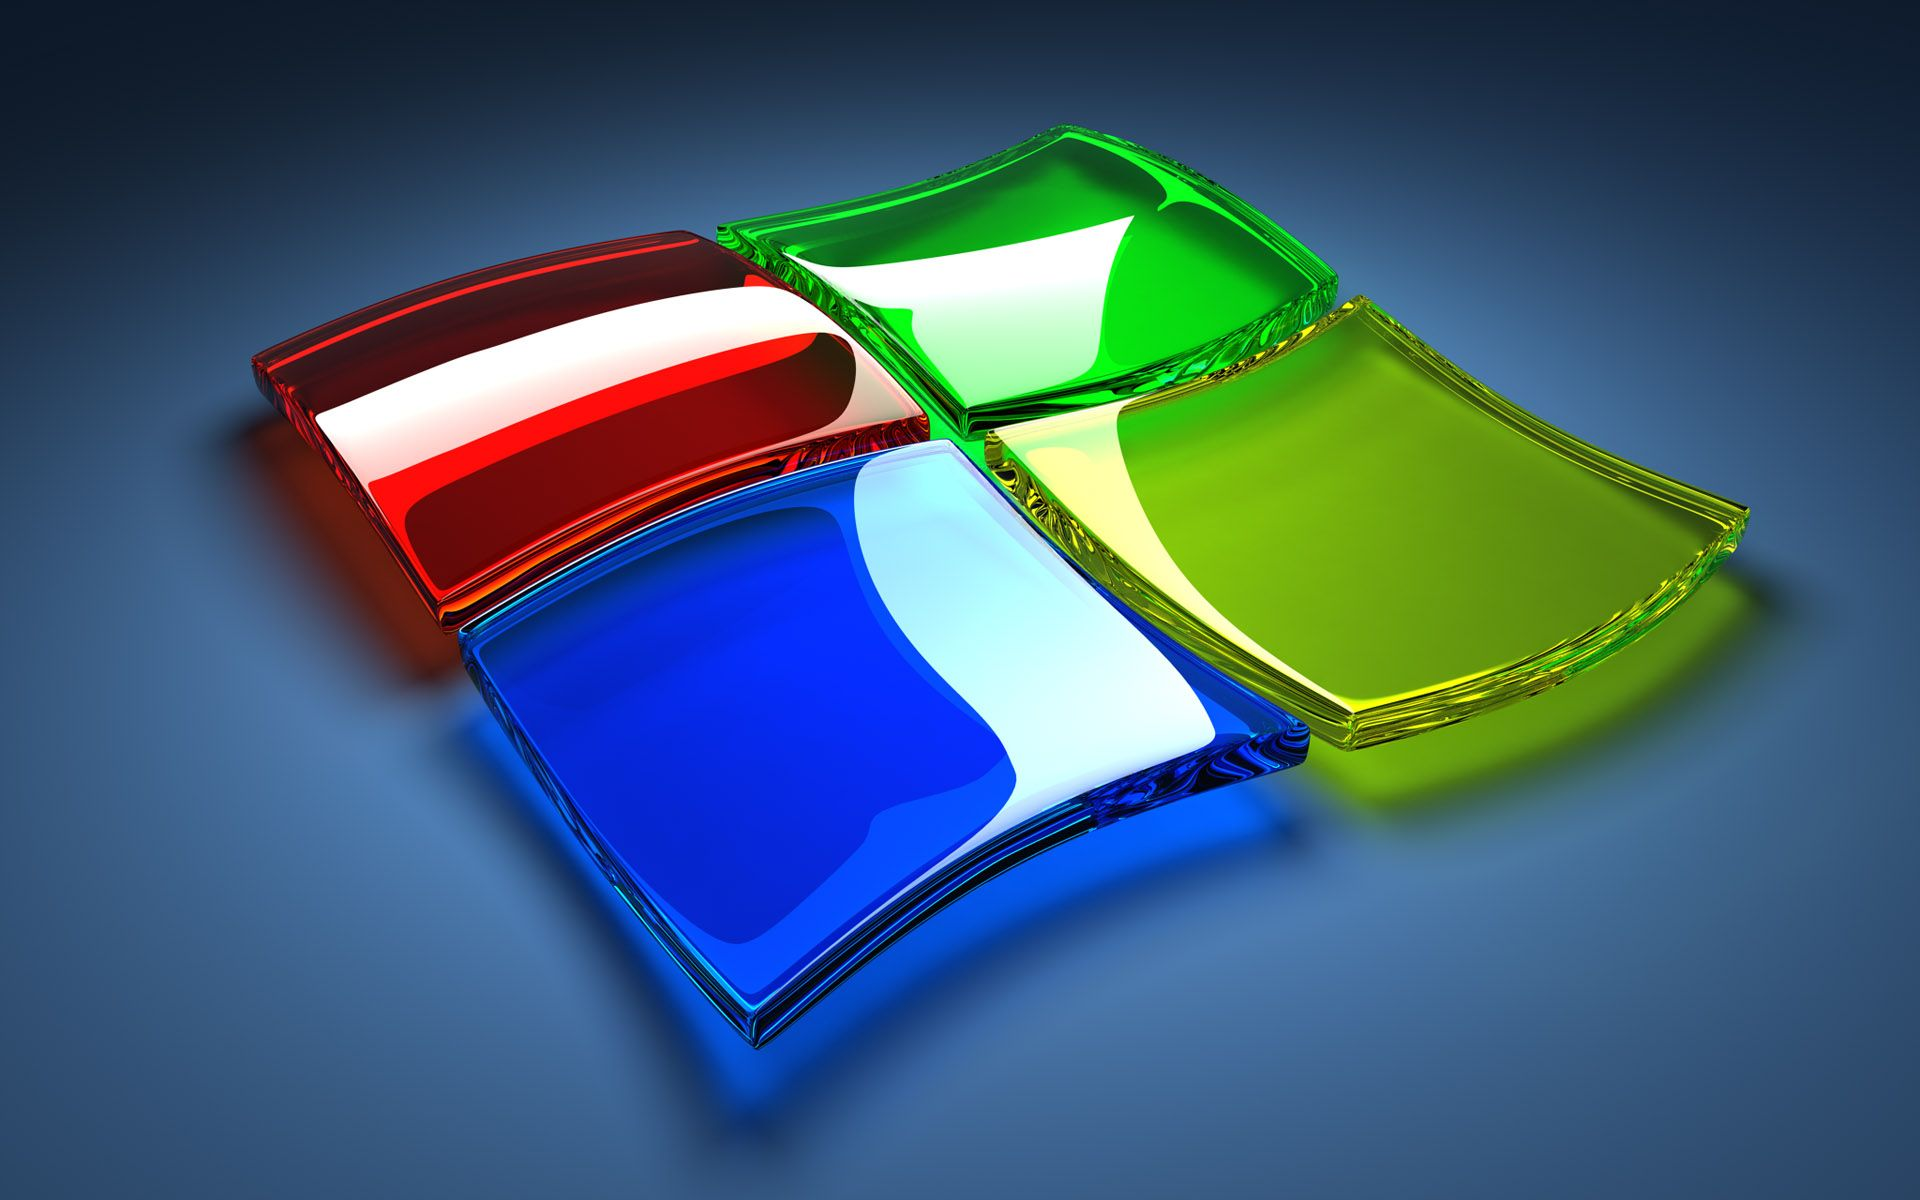 windows 7 3d hd widescreen desktop backgrounds 2400x1800px high definition desktop background hd 3d